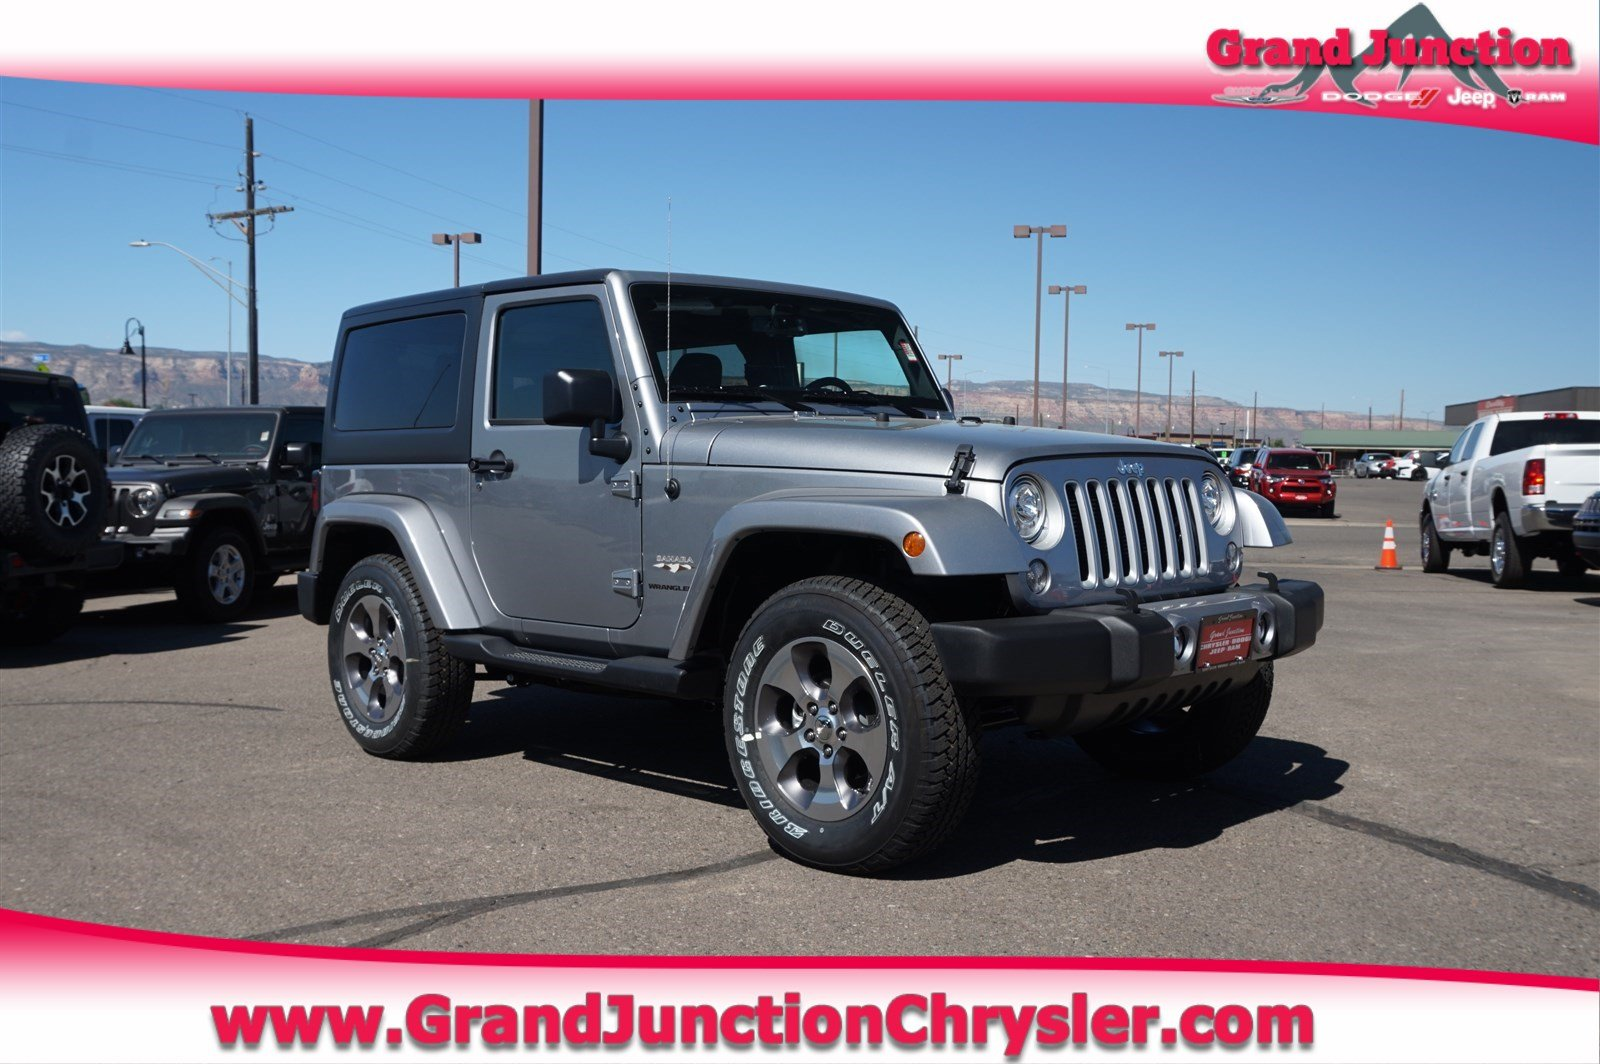 Featured new Chrysler, Dodge, Jeep, and Ram vehicles 2018 Jeep Wrangler JK SAHARA 4X4 Sport Utility for sale near you in Grand Junction, CO